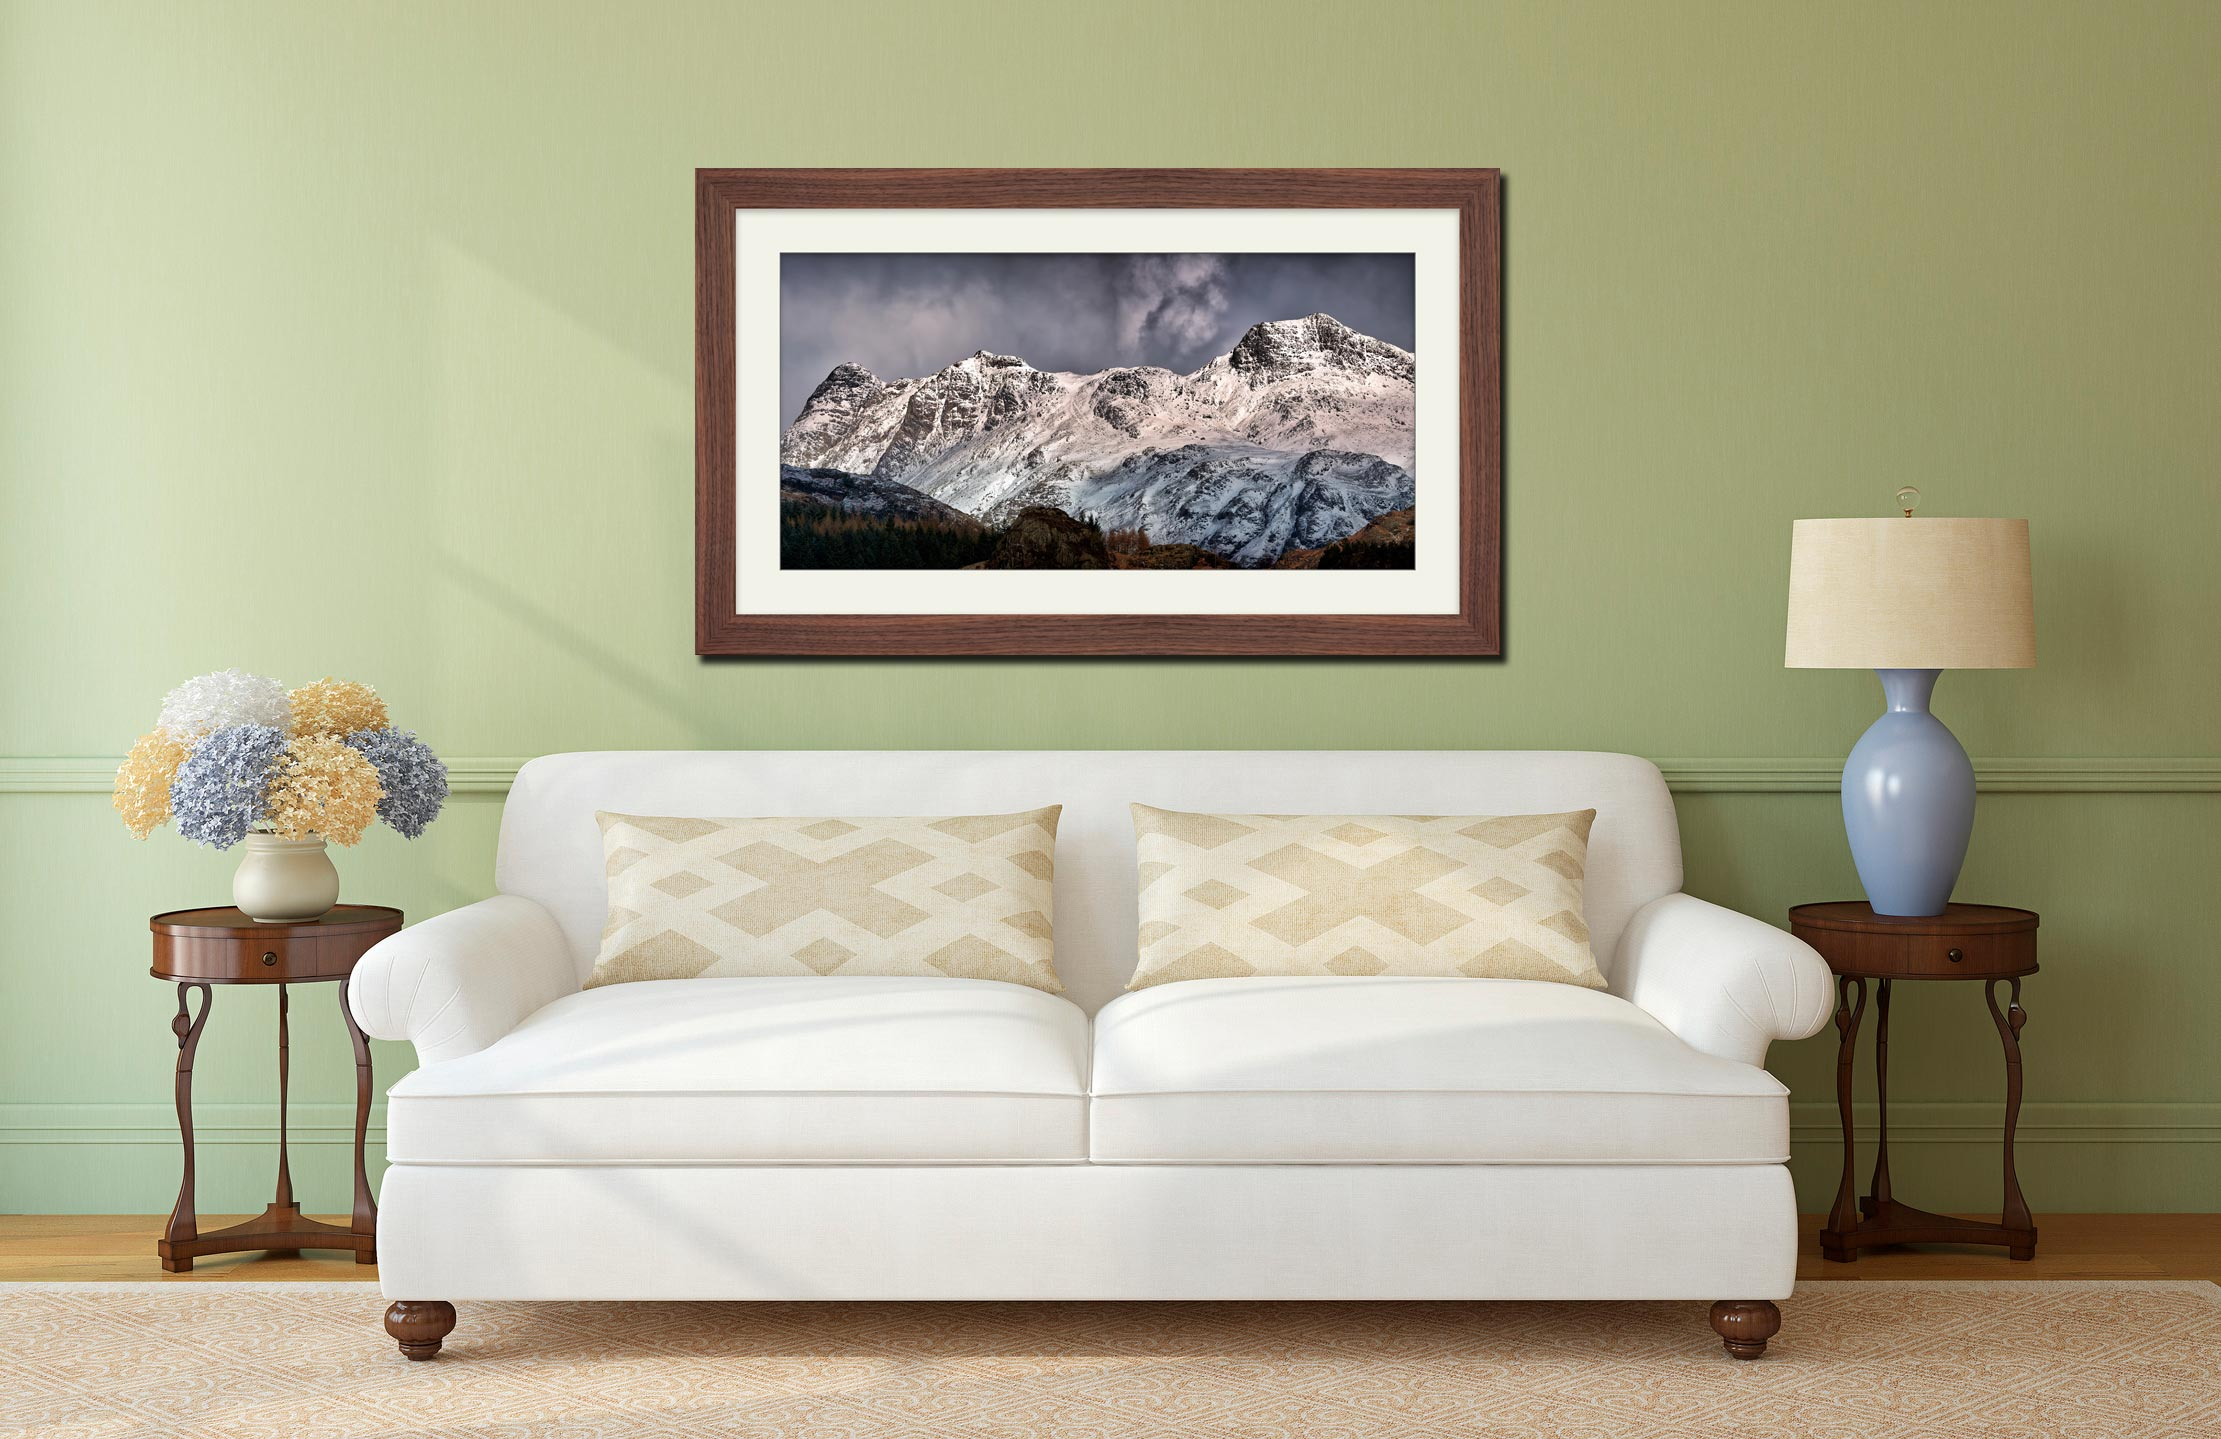 Snow on the Langdales - Framed Print with Mount on Wall